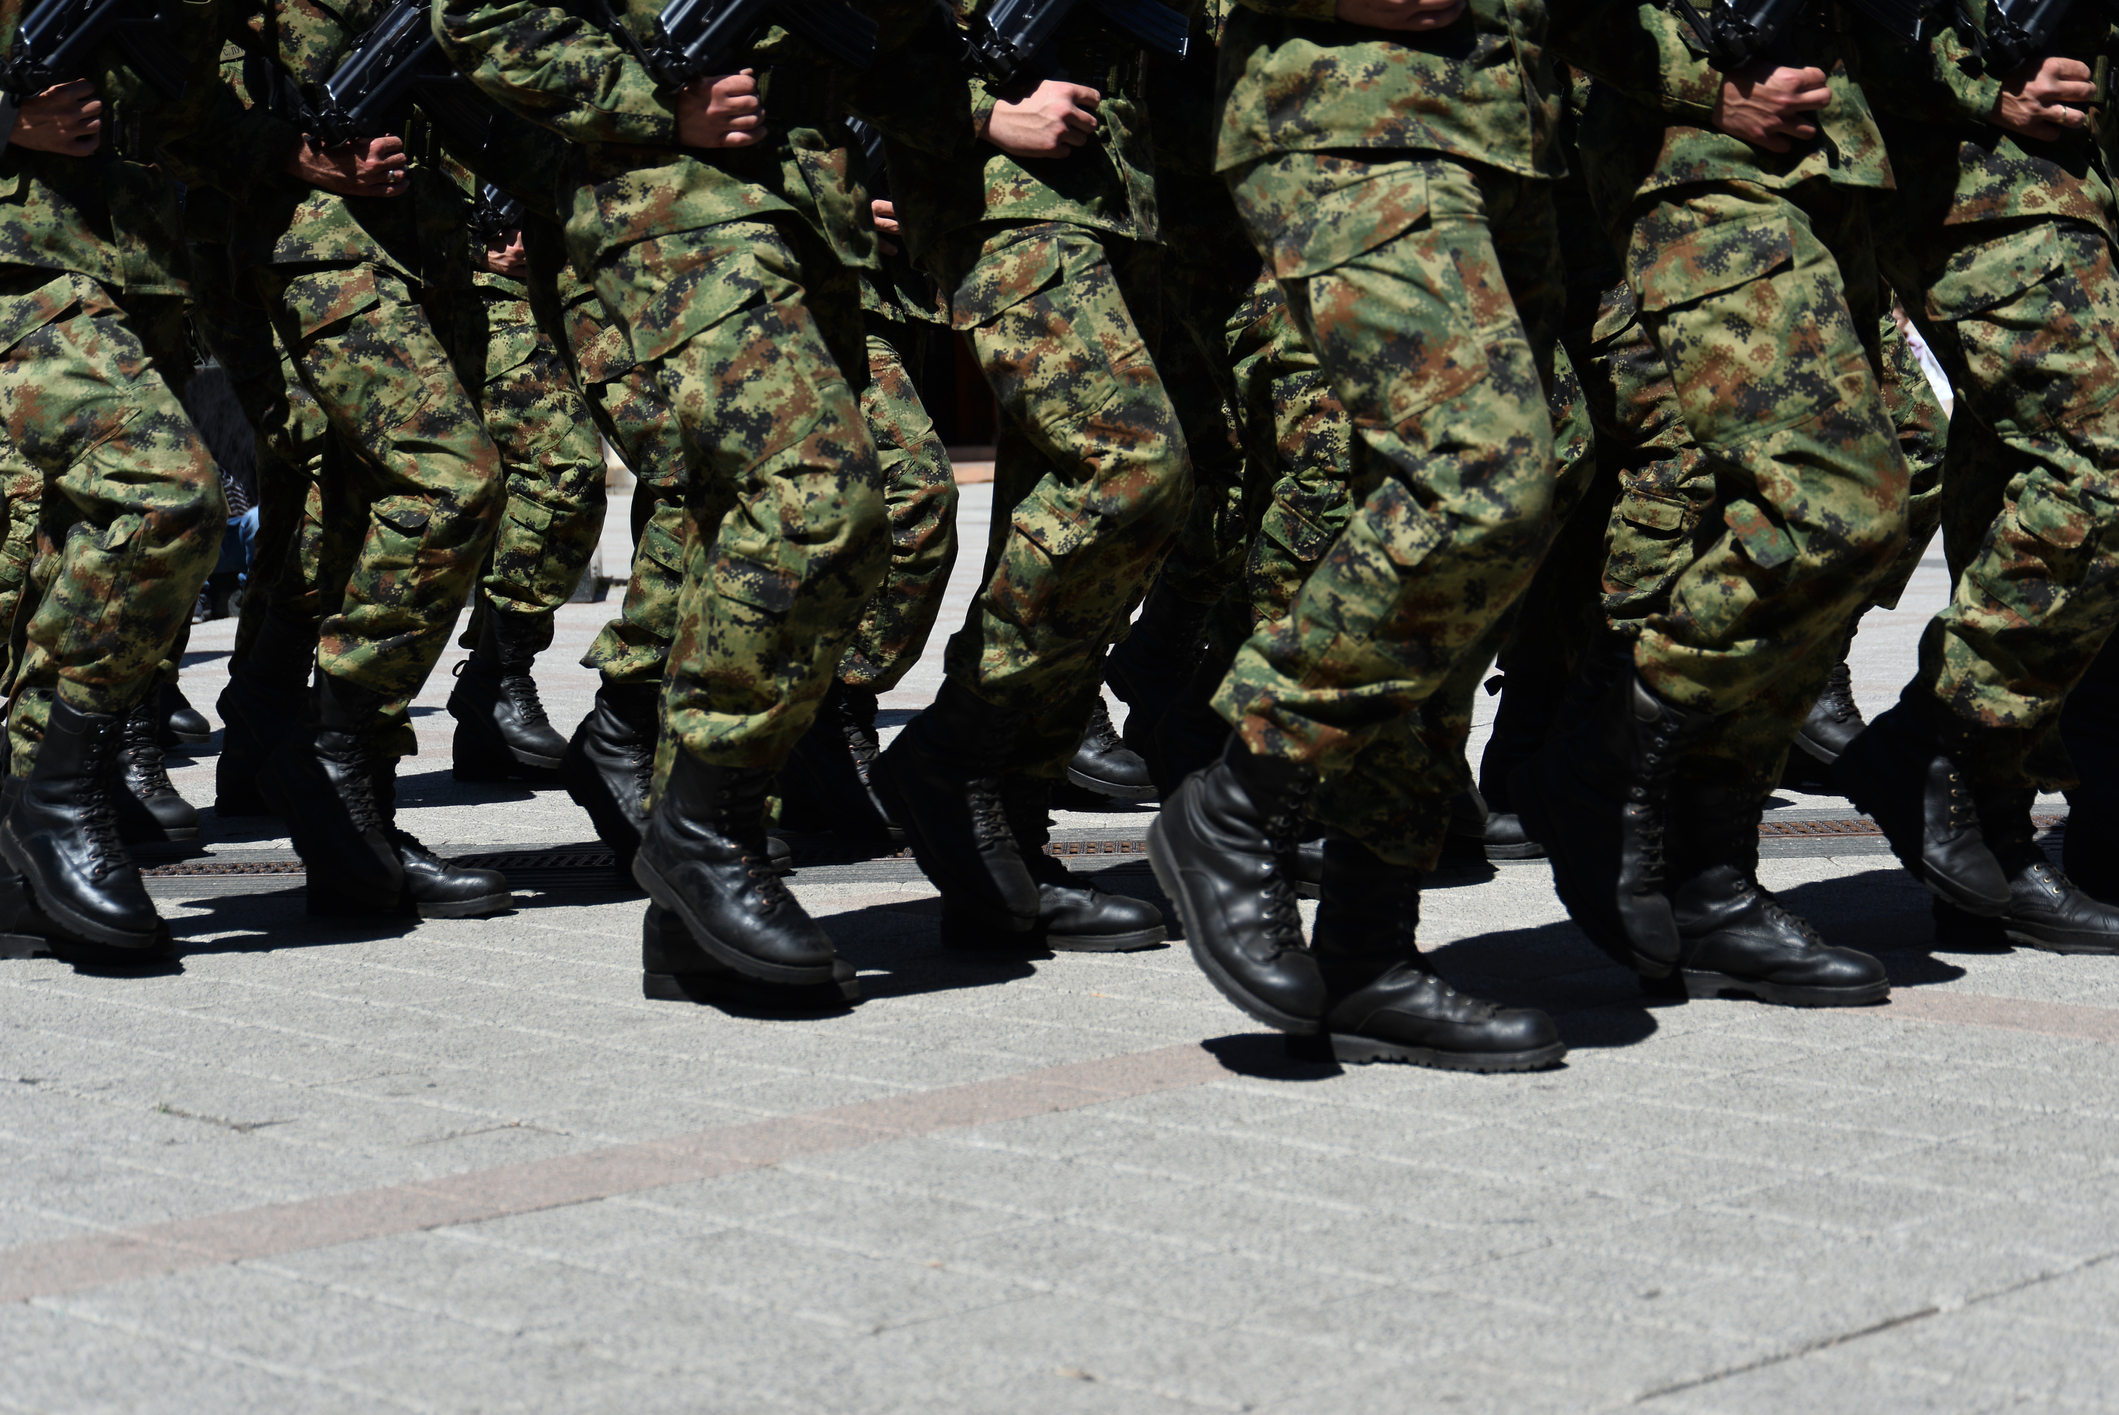 Army military soldiers marching in a parade outdoors.